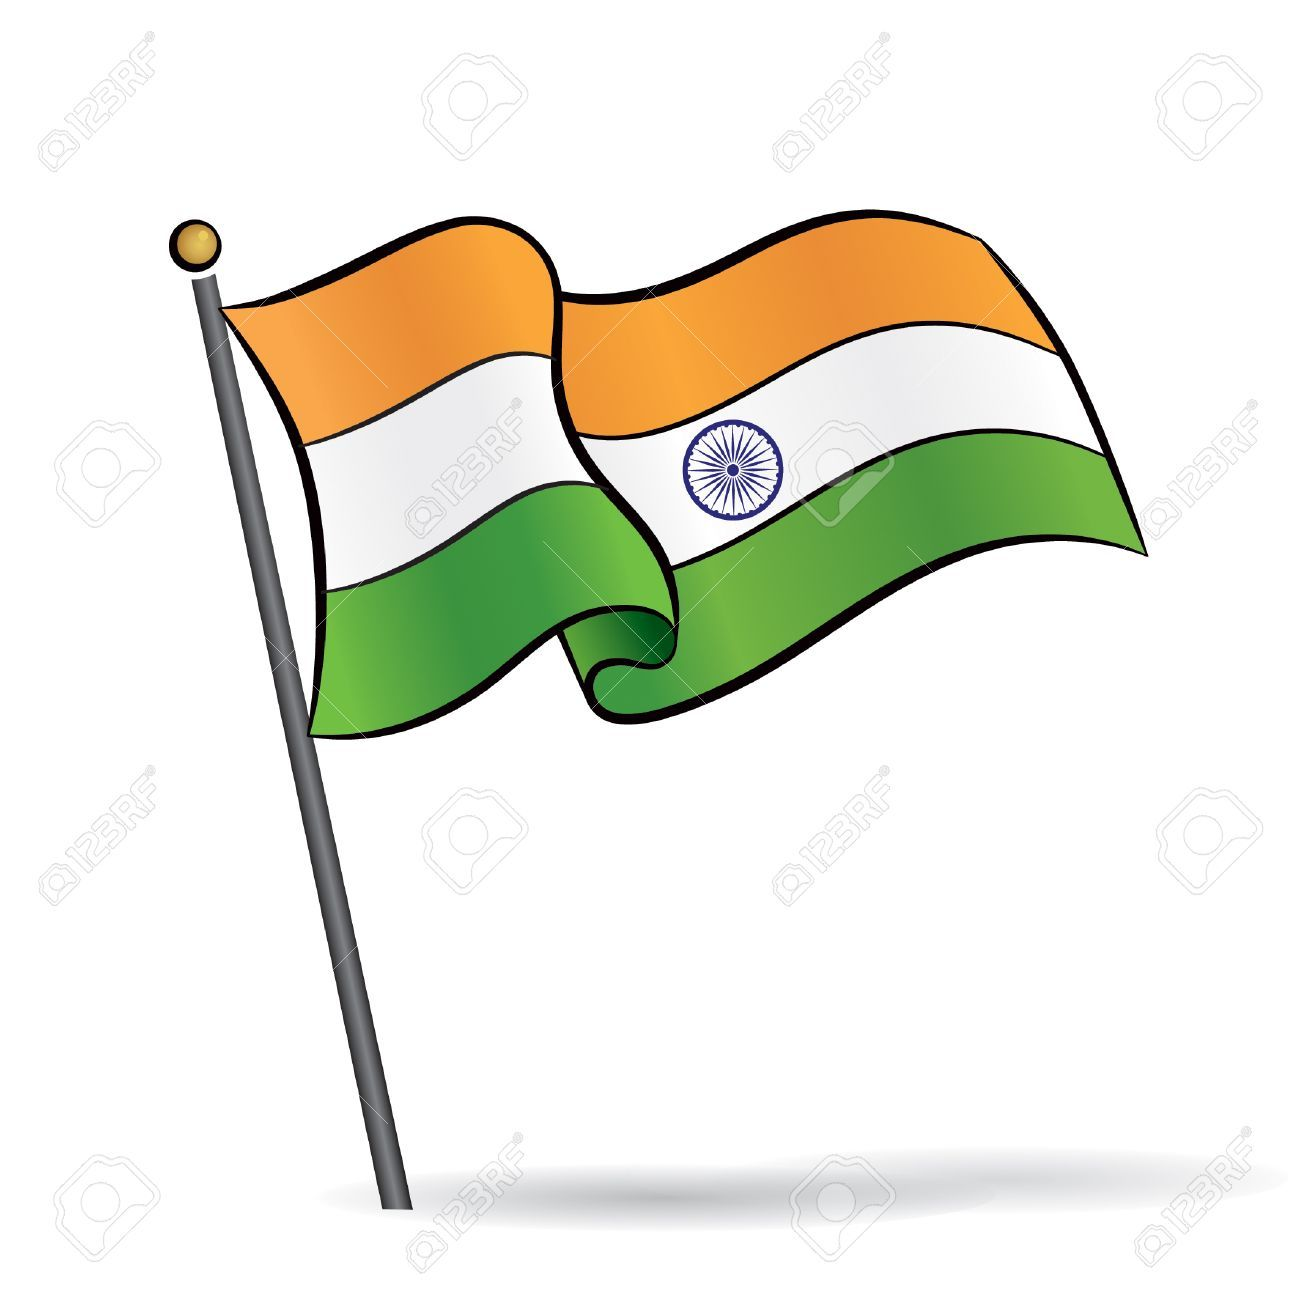 Indian flag clipart clip free stock Indian flag clipart images 2 » Clipart Portal clip free stock